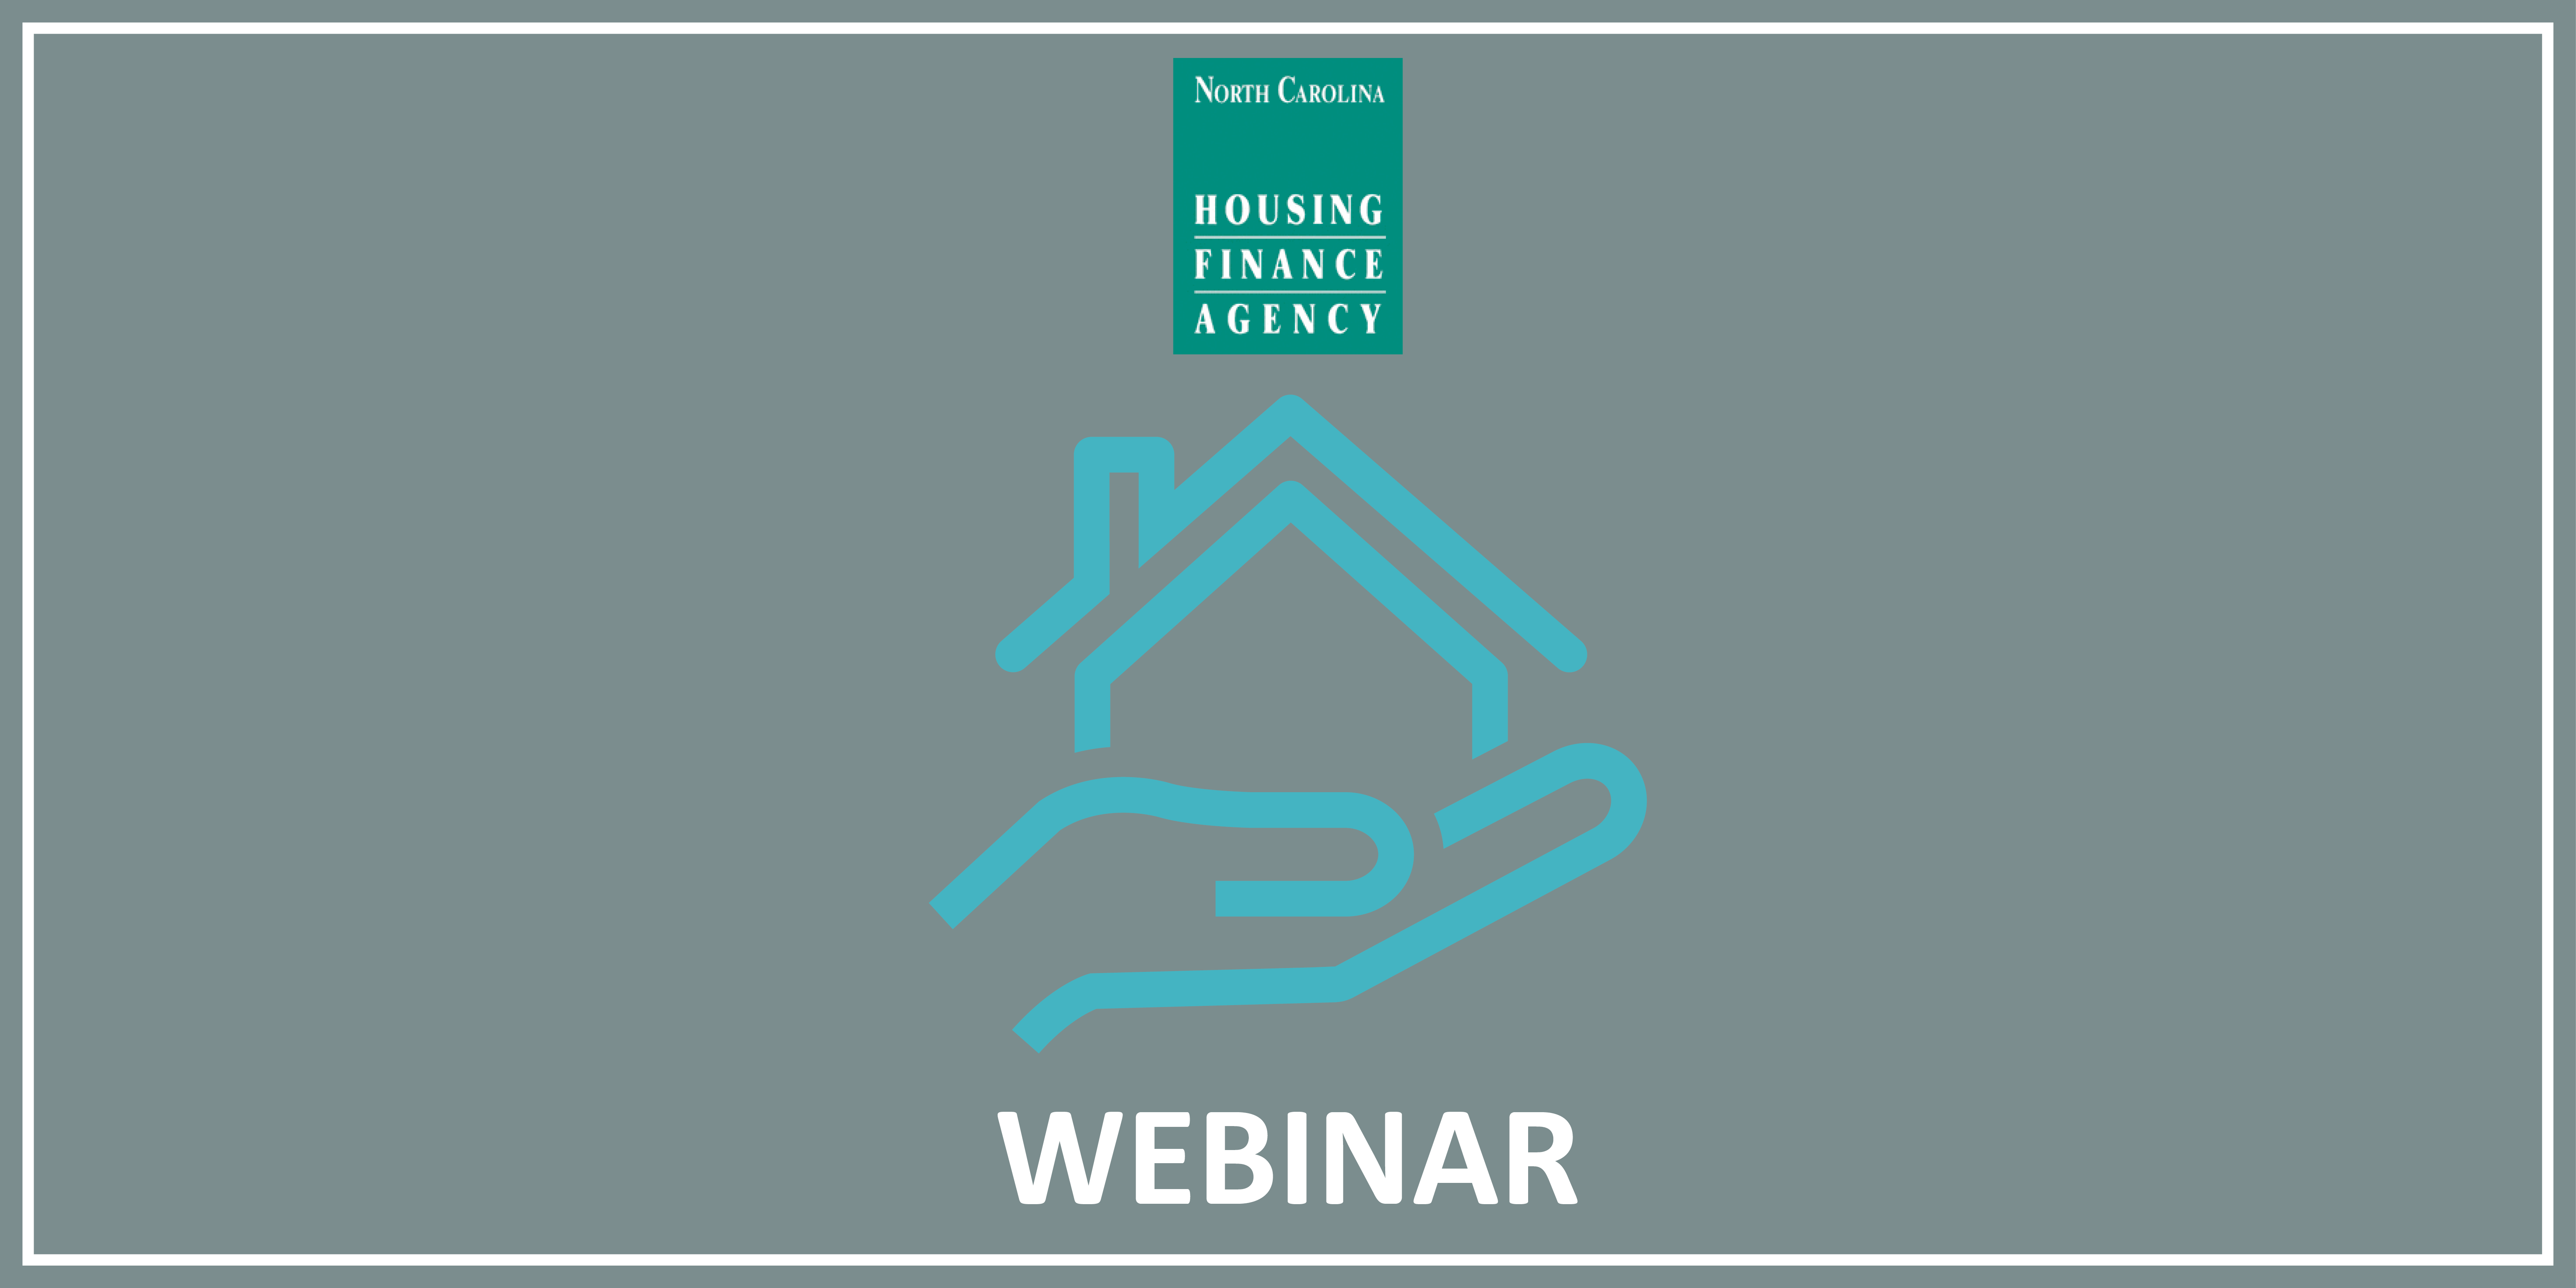 Blue icon of a house in a hand with the Agency logo on top and WEBINAR written below